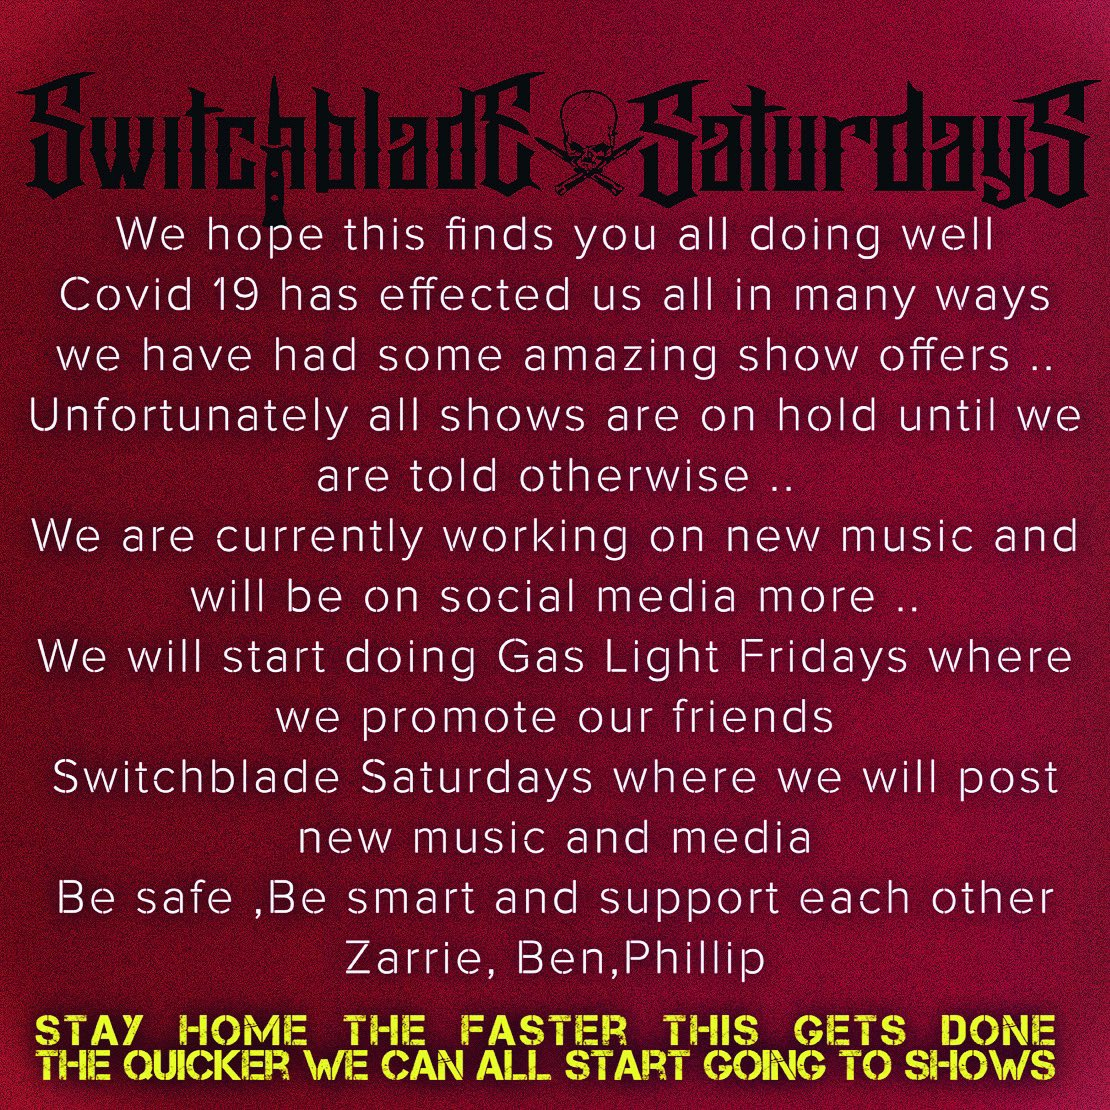 Stay Tuned #switchbladesaturdays #horror #punkrock #emo #posthardcore #stayhome #stayhealthy #staystrongpic.twitter.com/zpHQE0YBFj